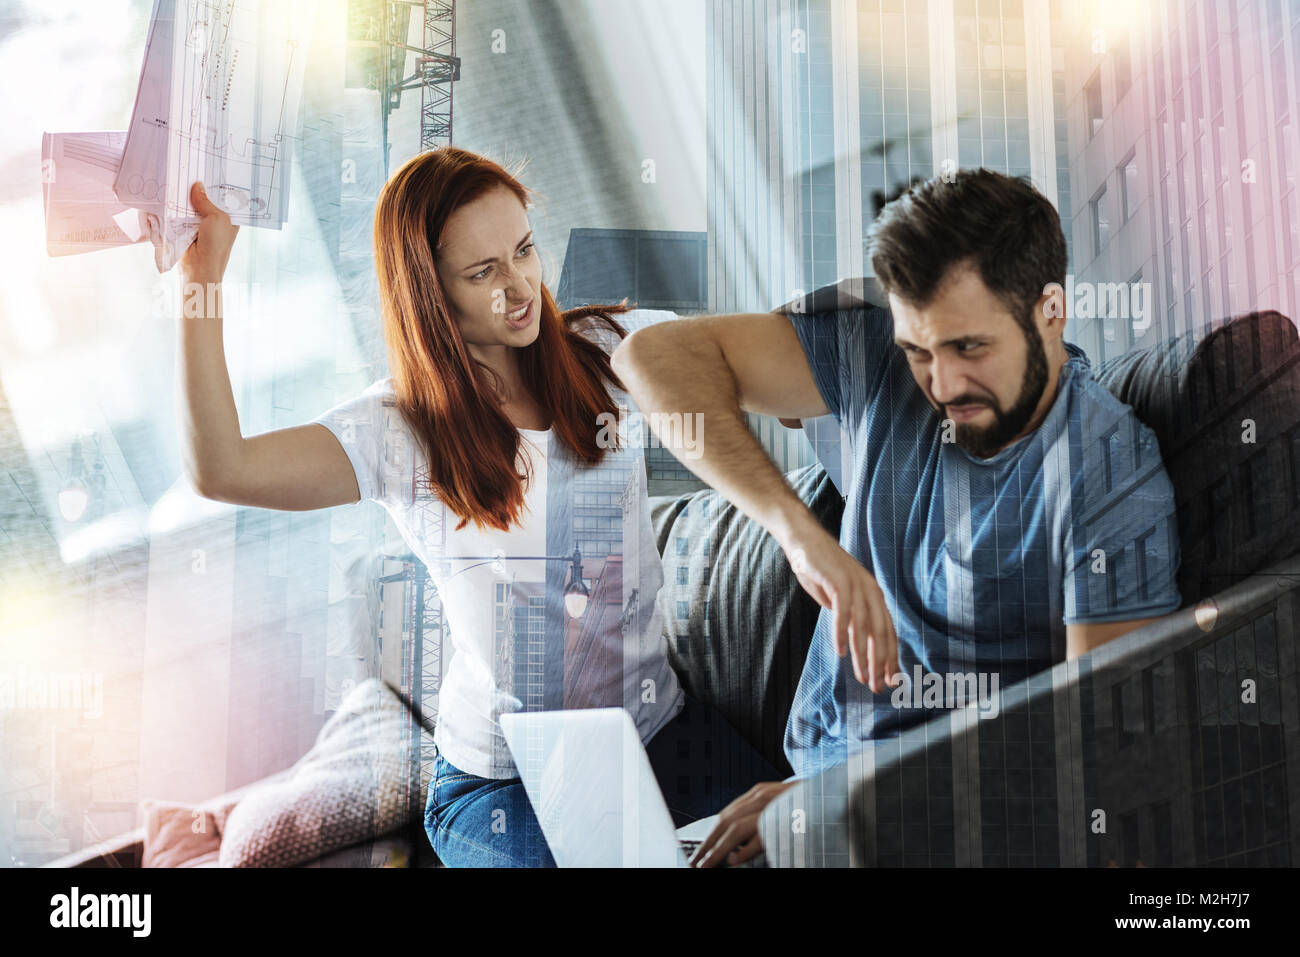 Furious young woman throwing documents into her boyfriend - Stock Image